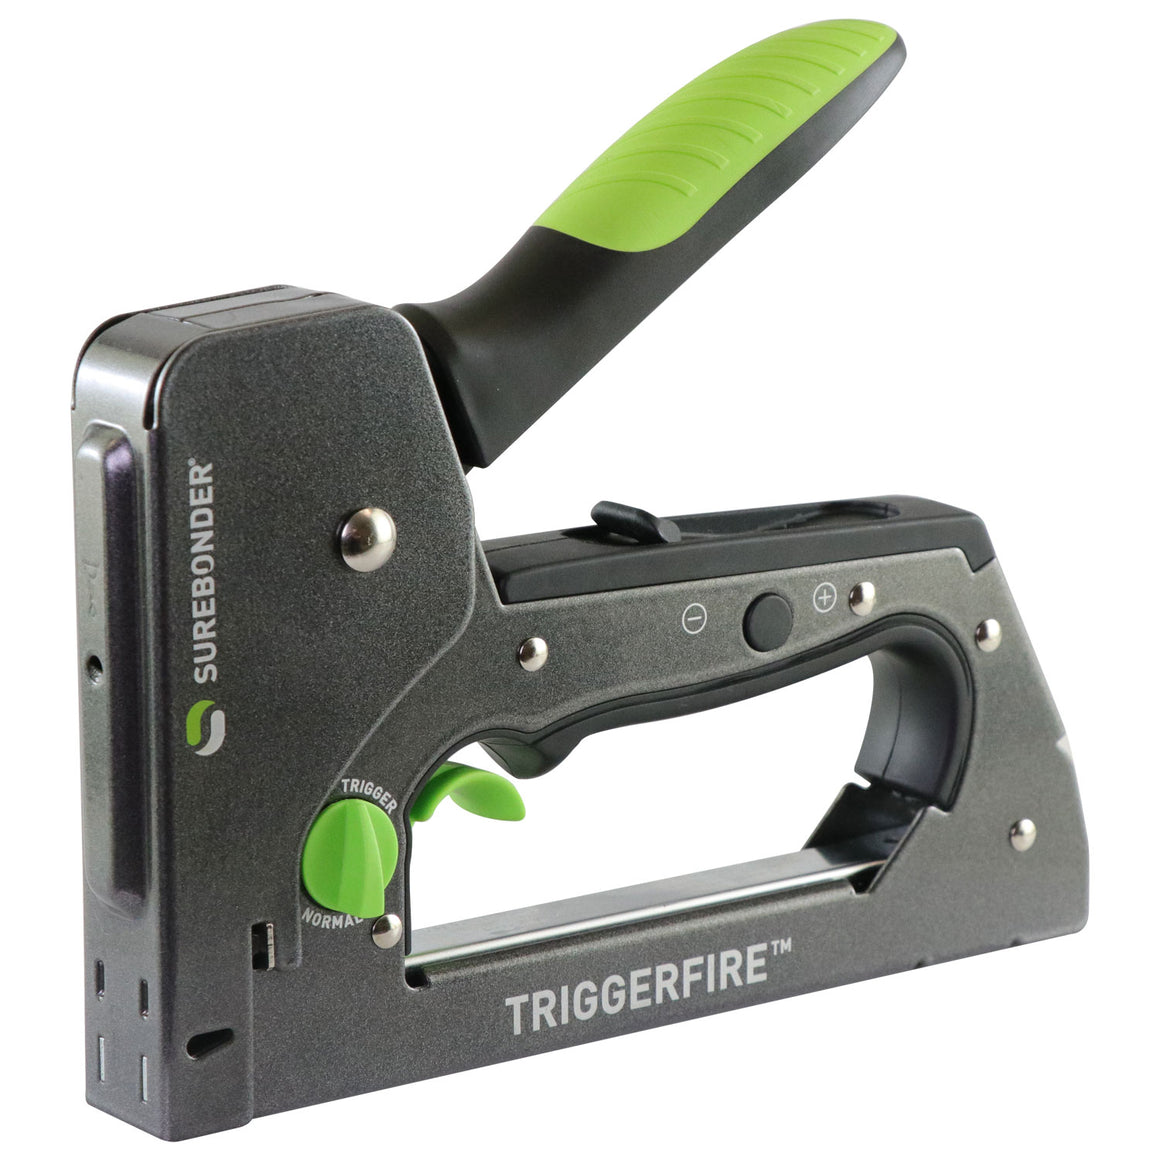 Surebonder TRIGGERFIRE staple gun with two modes: trigger and normal, cushioned rubber handle, steel construction